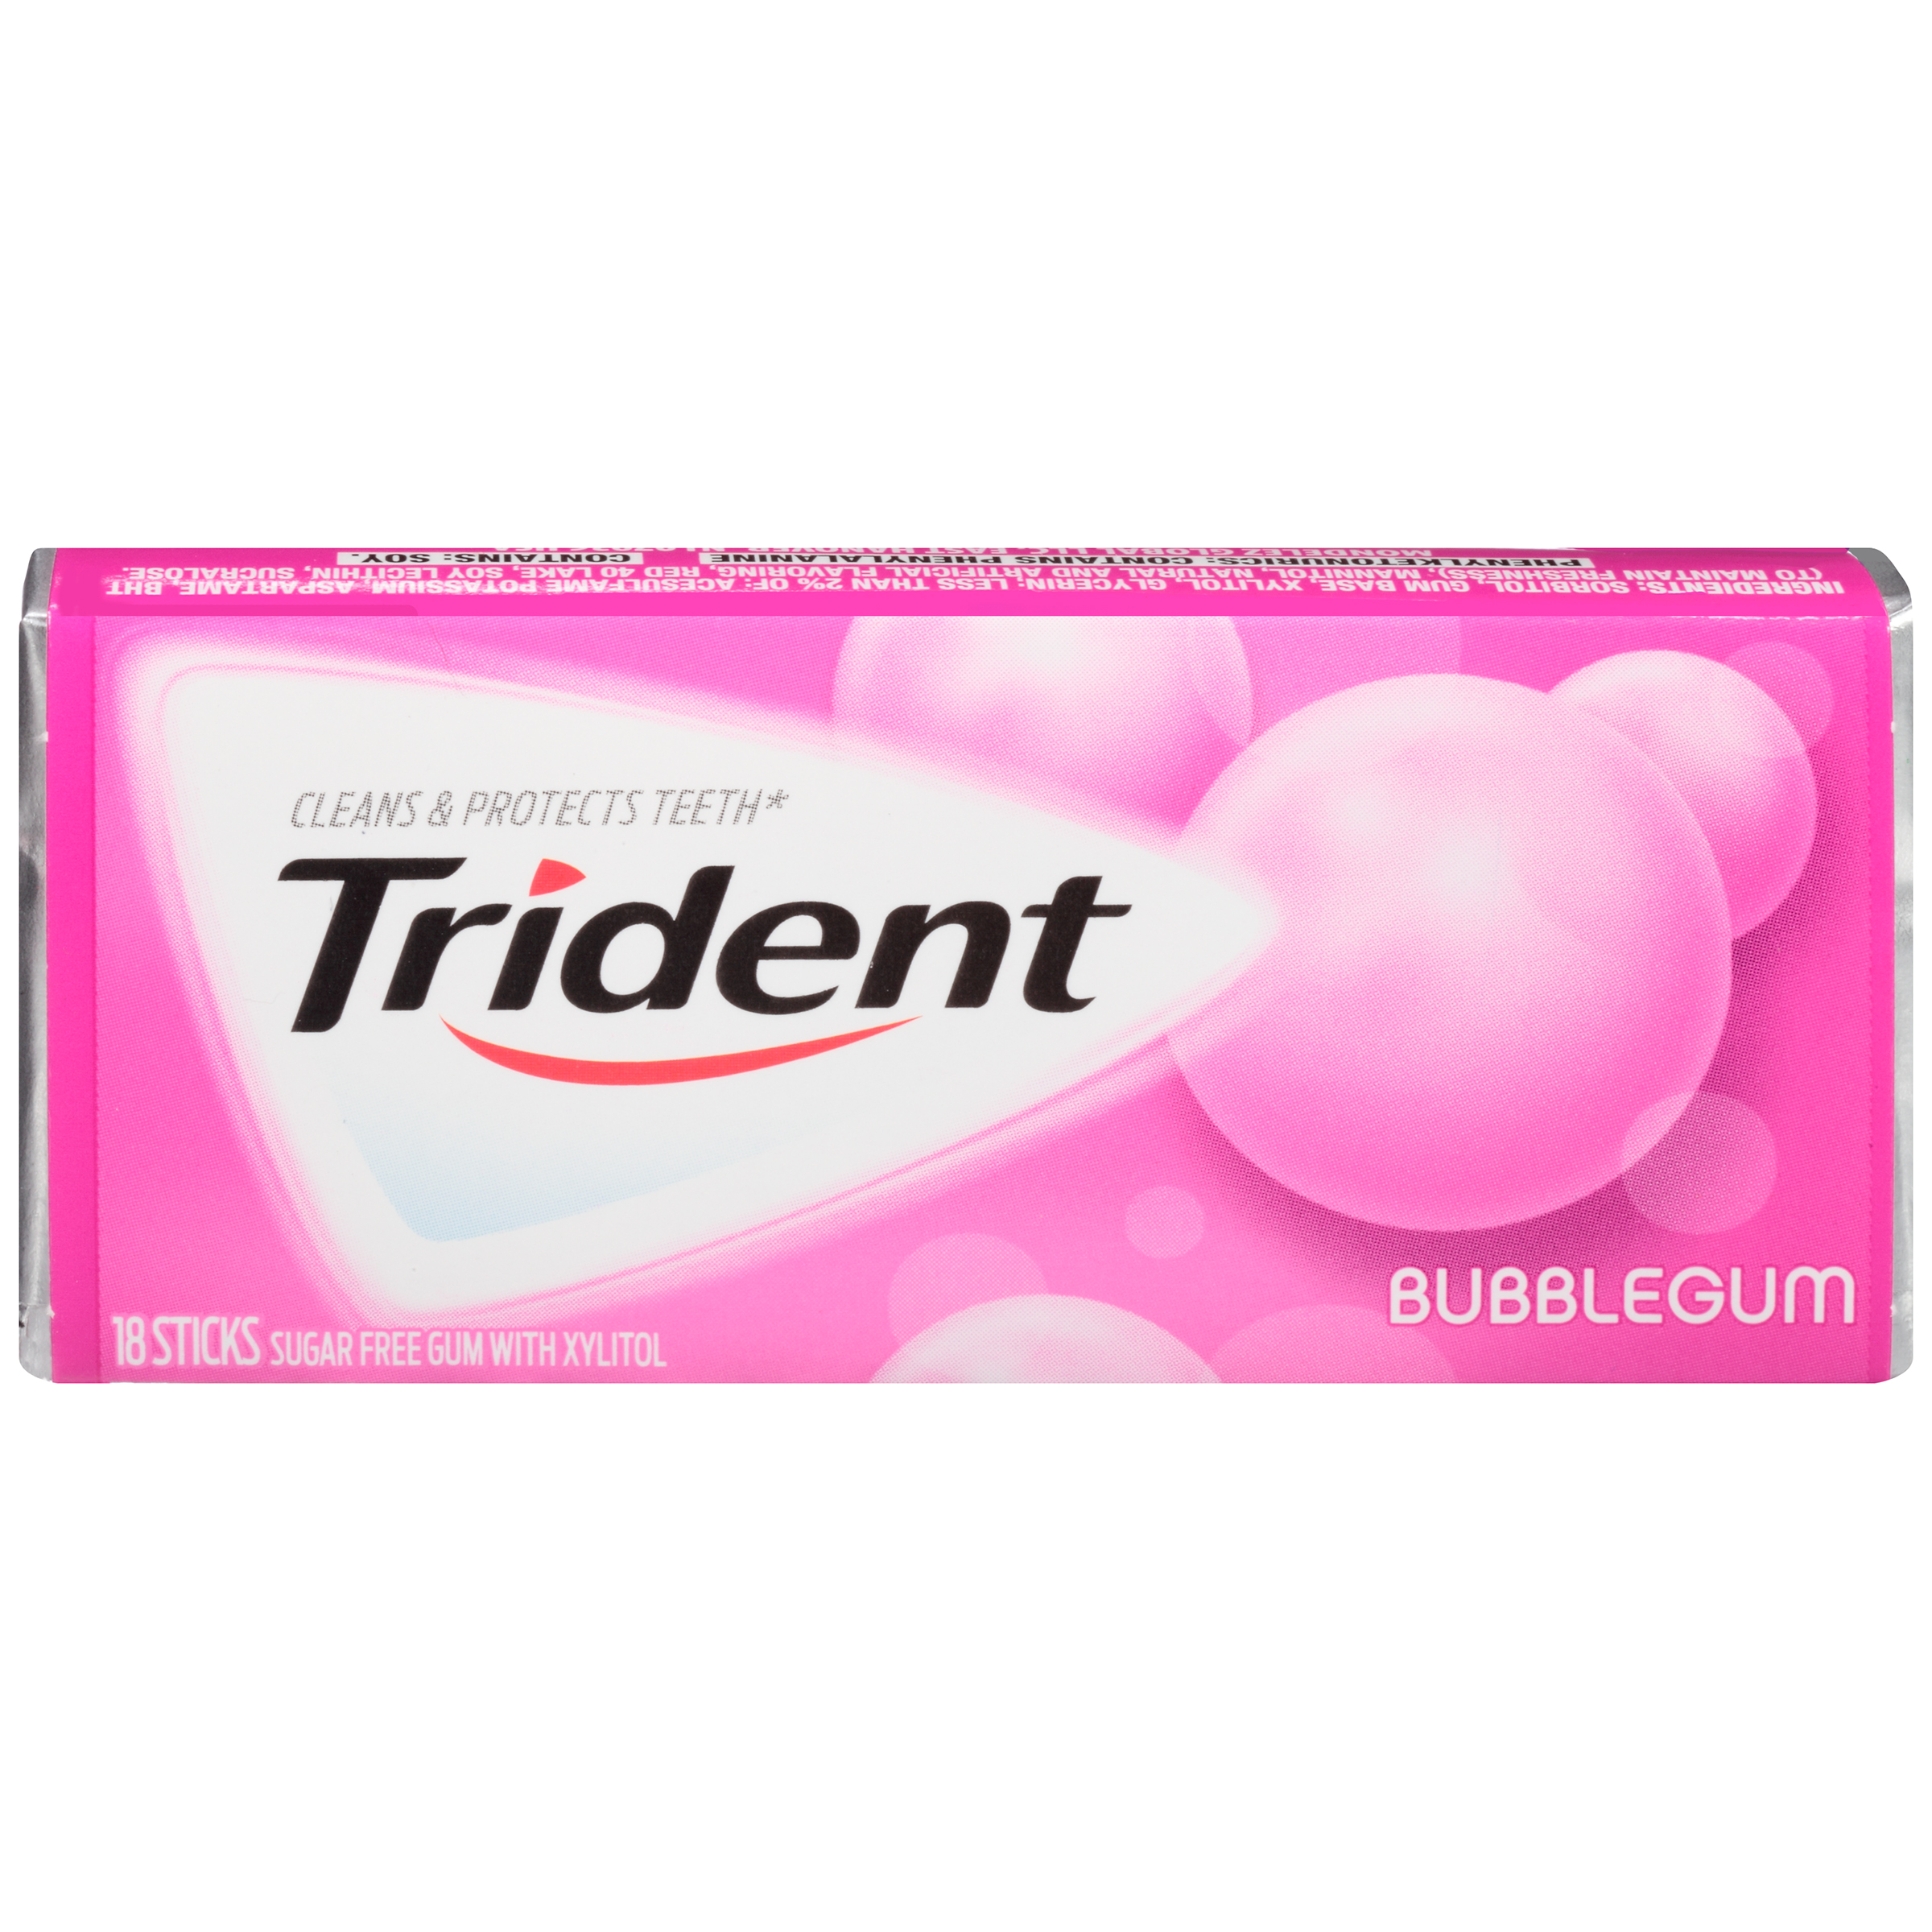 Trident Bubblegum Sugar Free Gum, 18 pieces